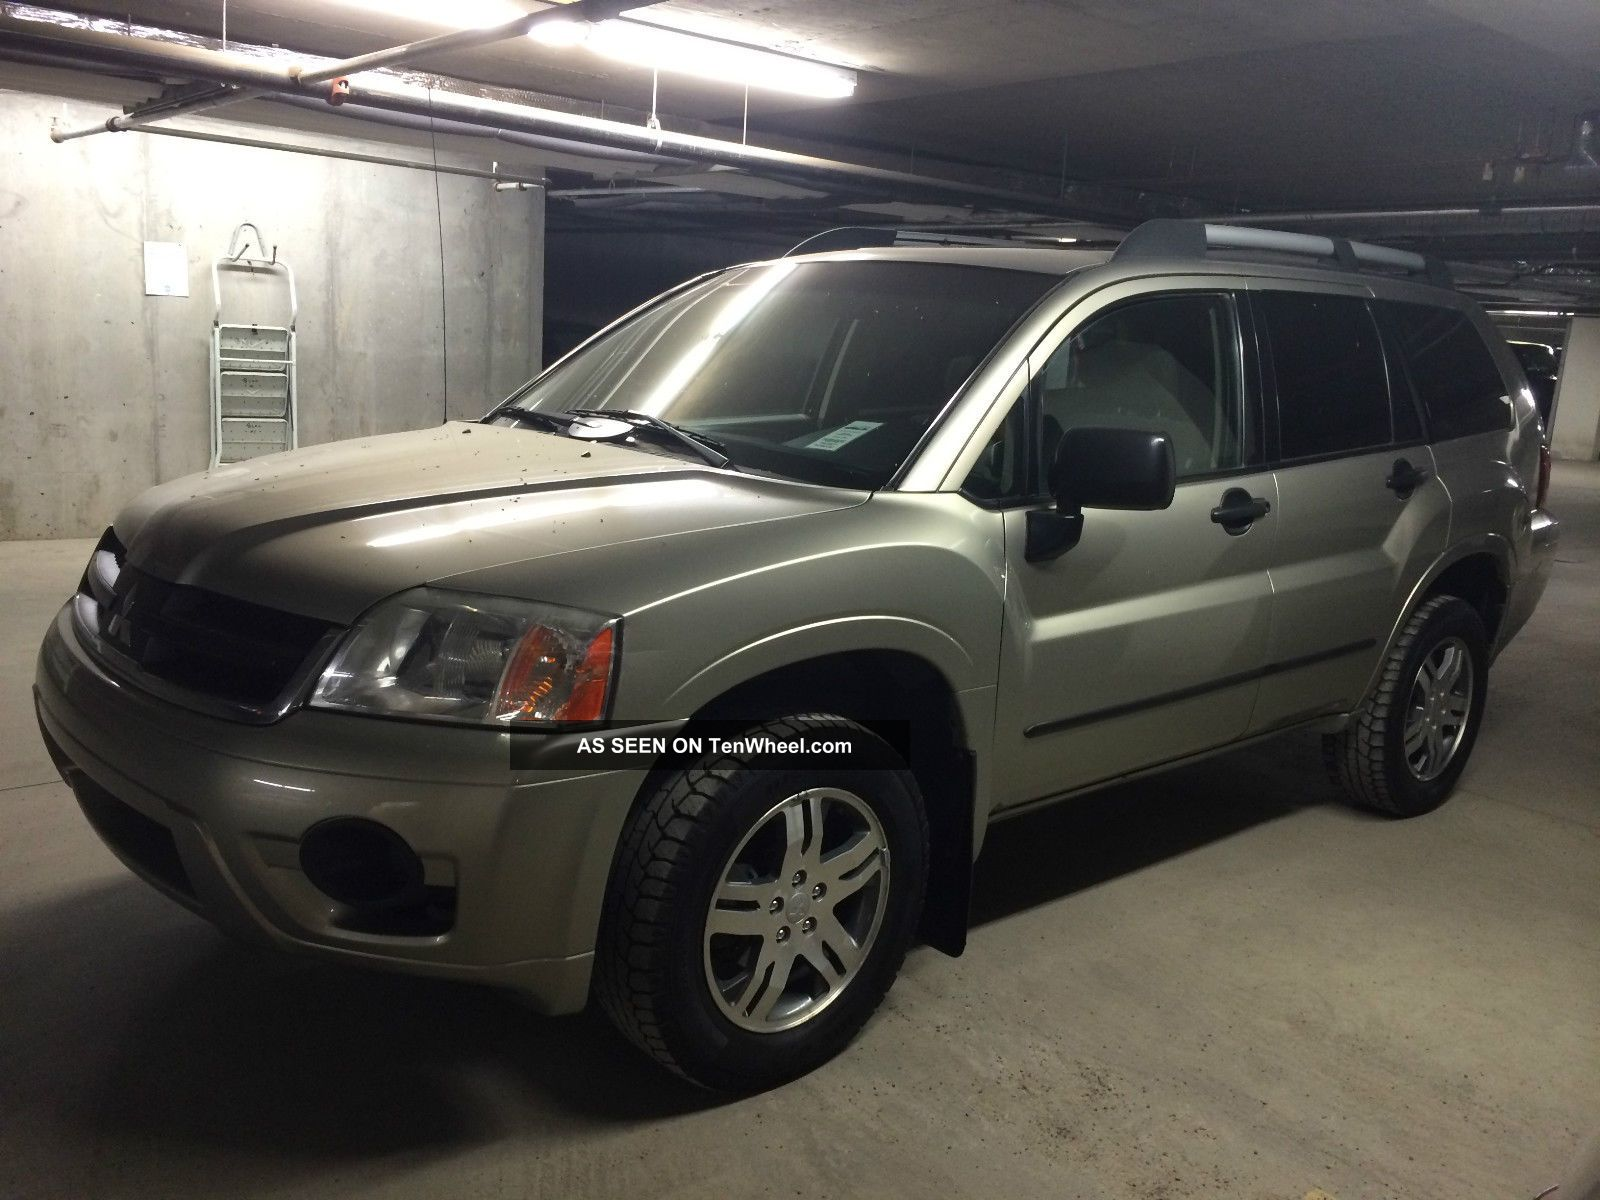 2006 Mitsubishi Endeavor Suv,  Awd, ,  Ac,  Am / Fm / Cd,  201000km,  N.  Windshield Endeavor photo